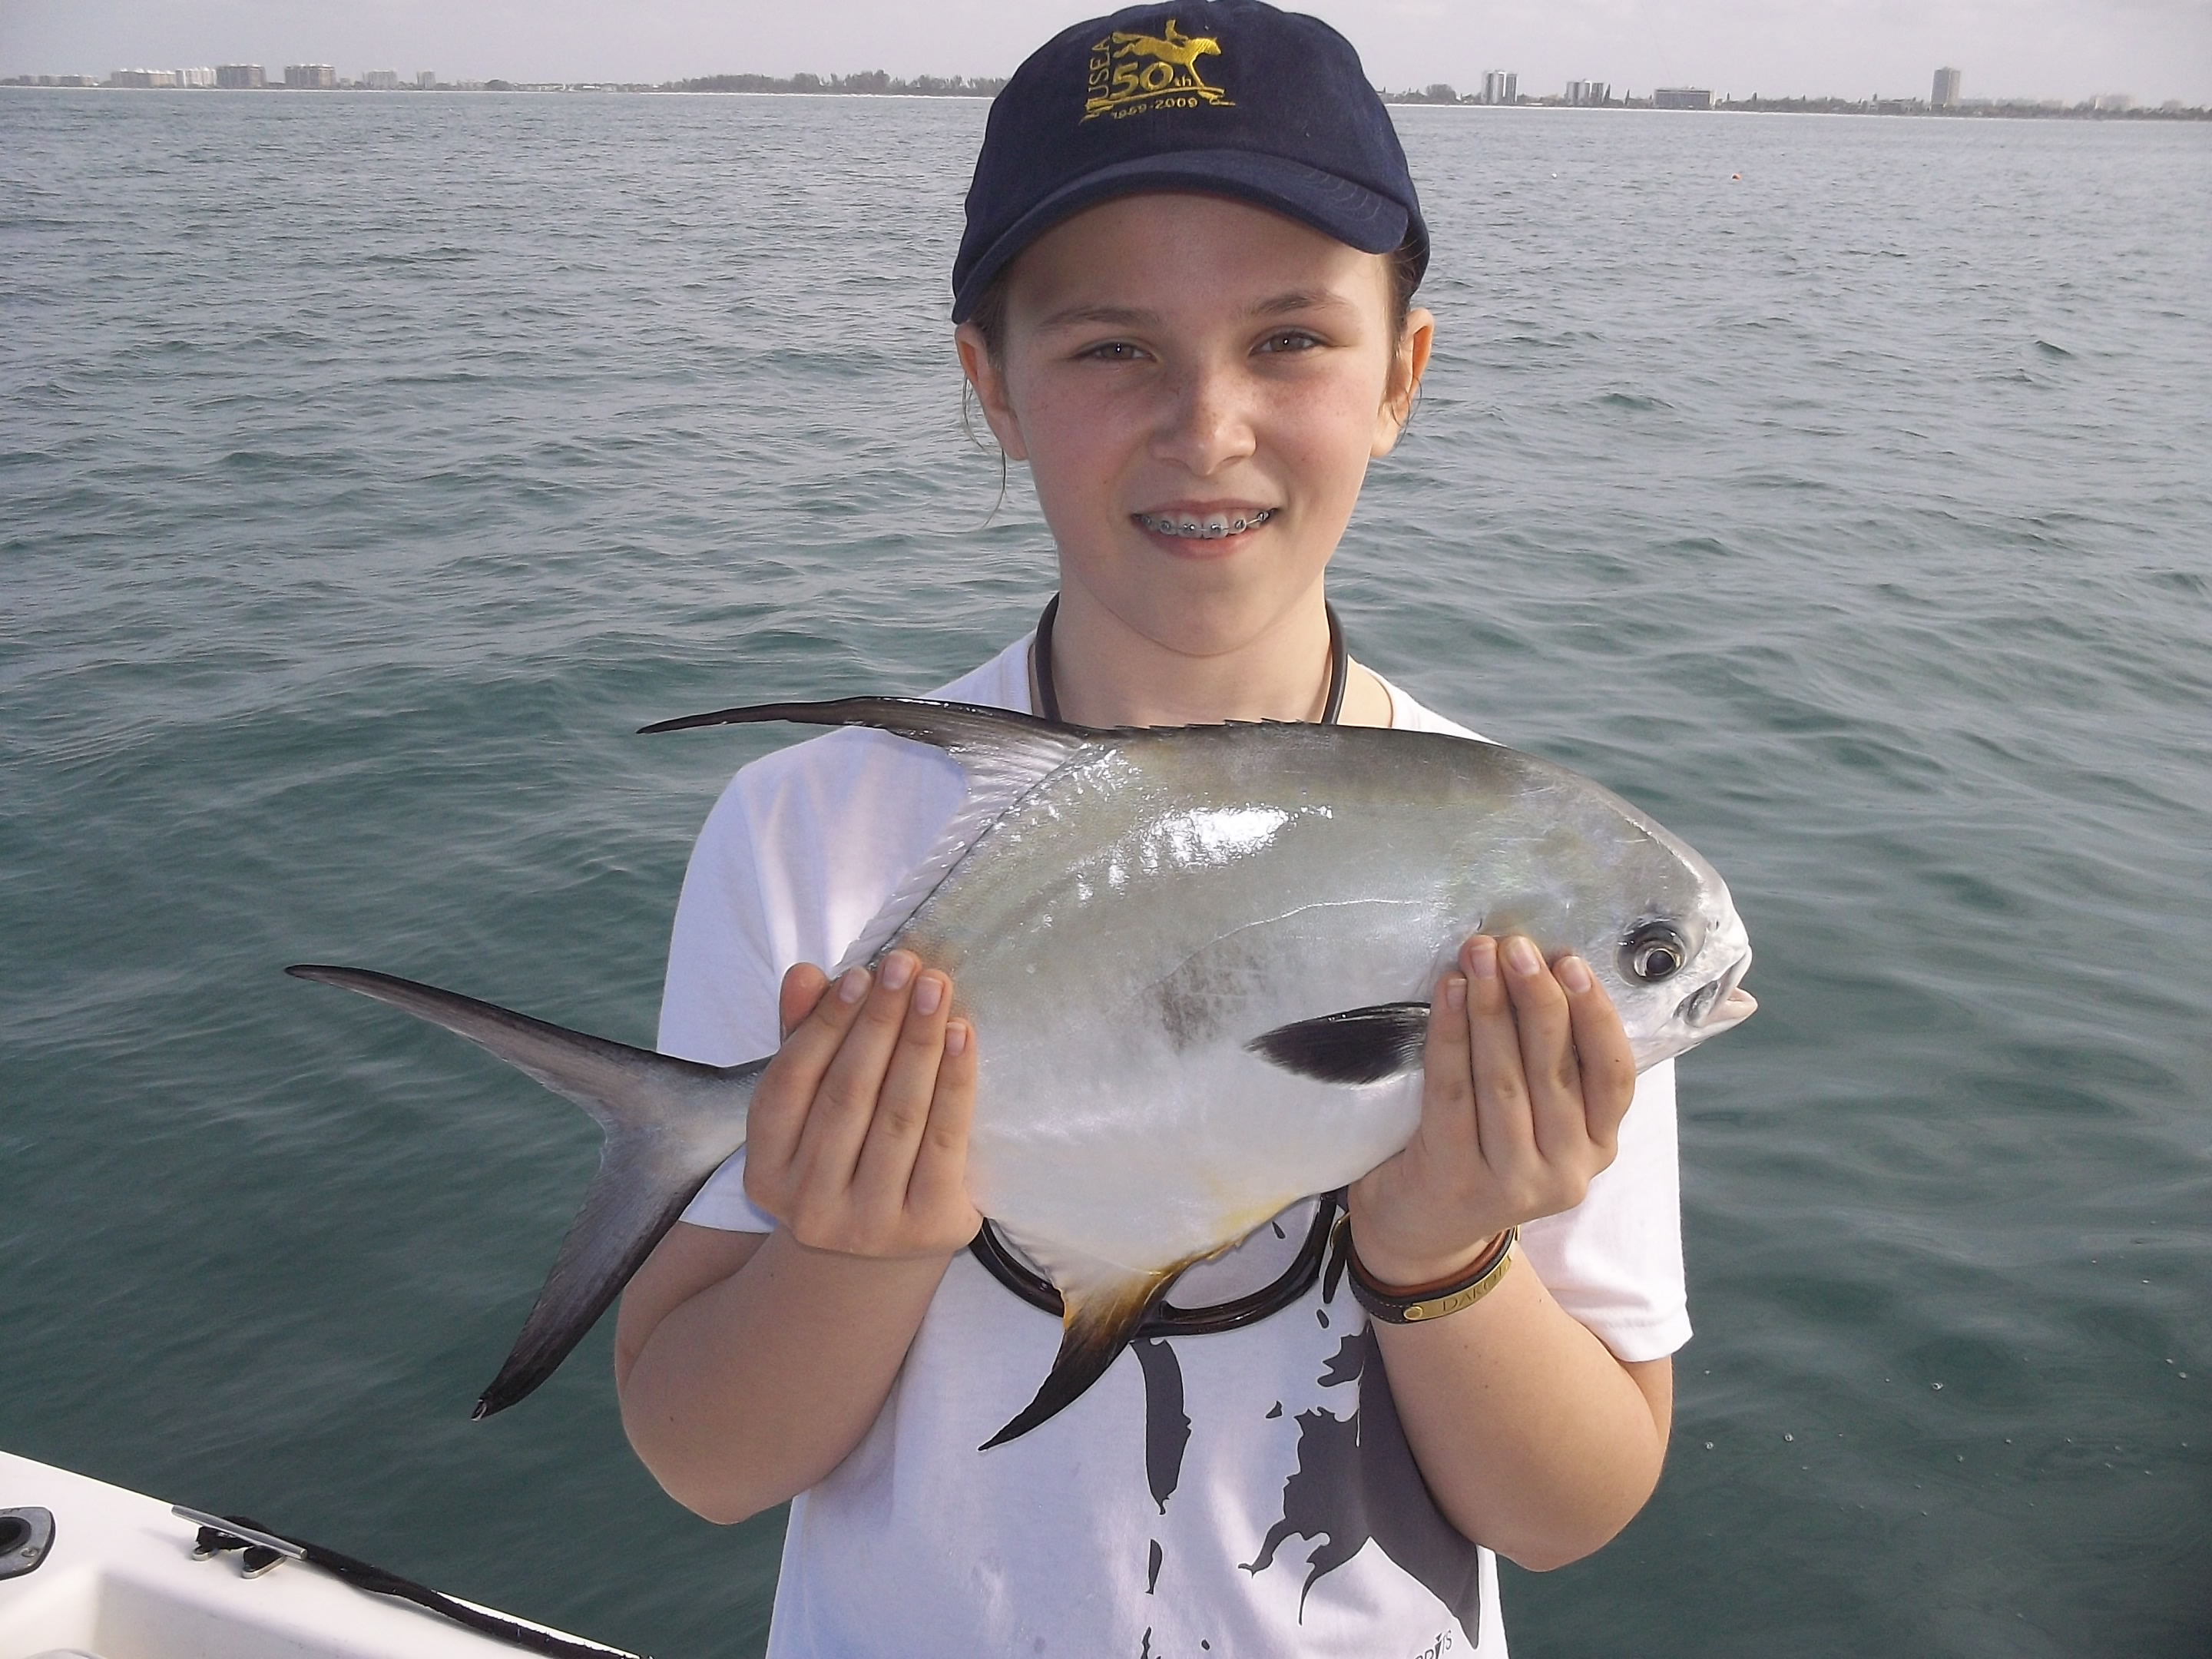 Sarasota florida fishing report rodbender fishing for Types of fish in the gulf of mexico